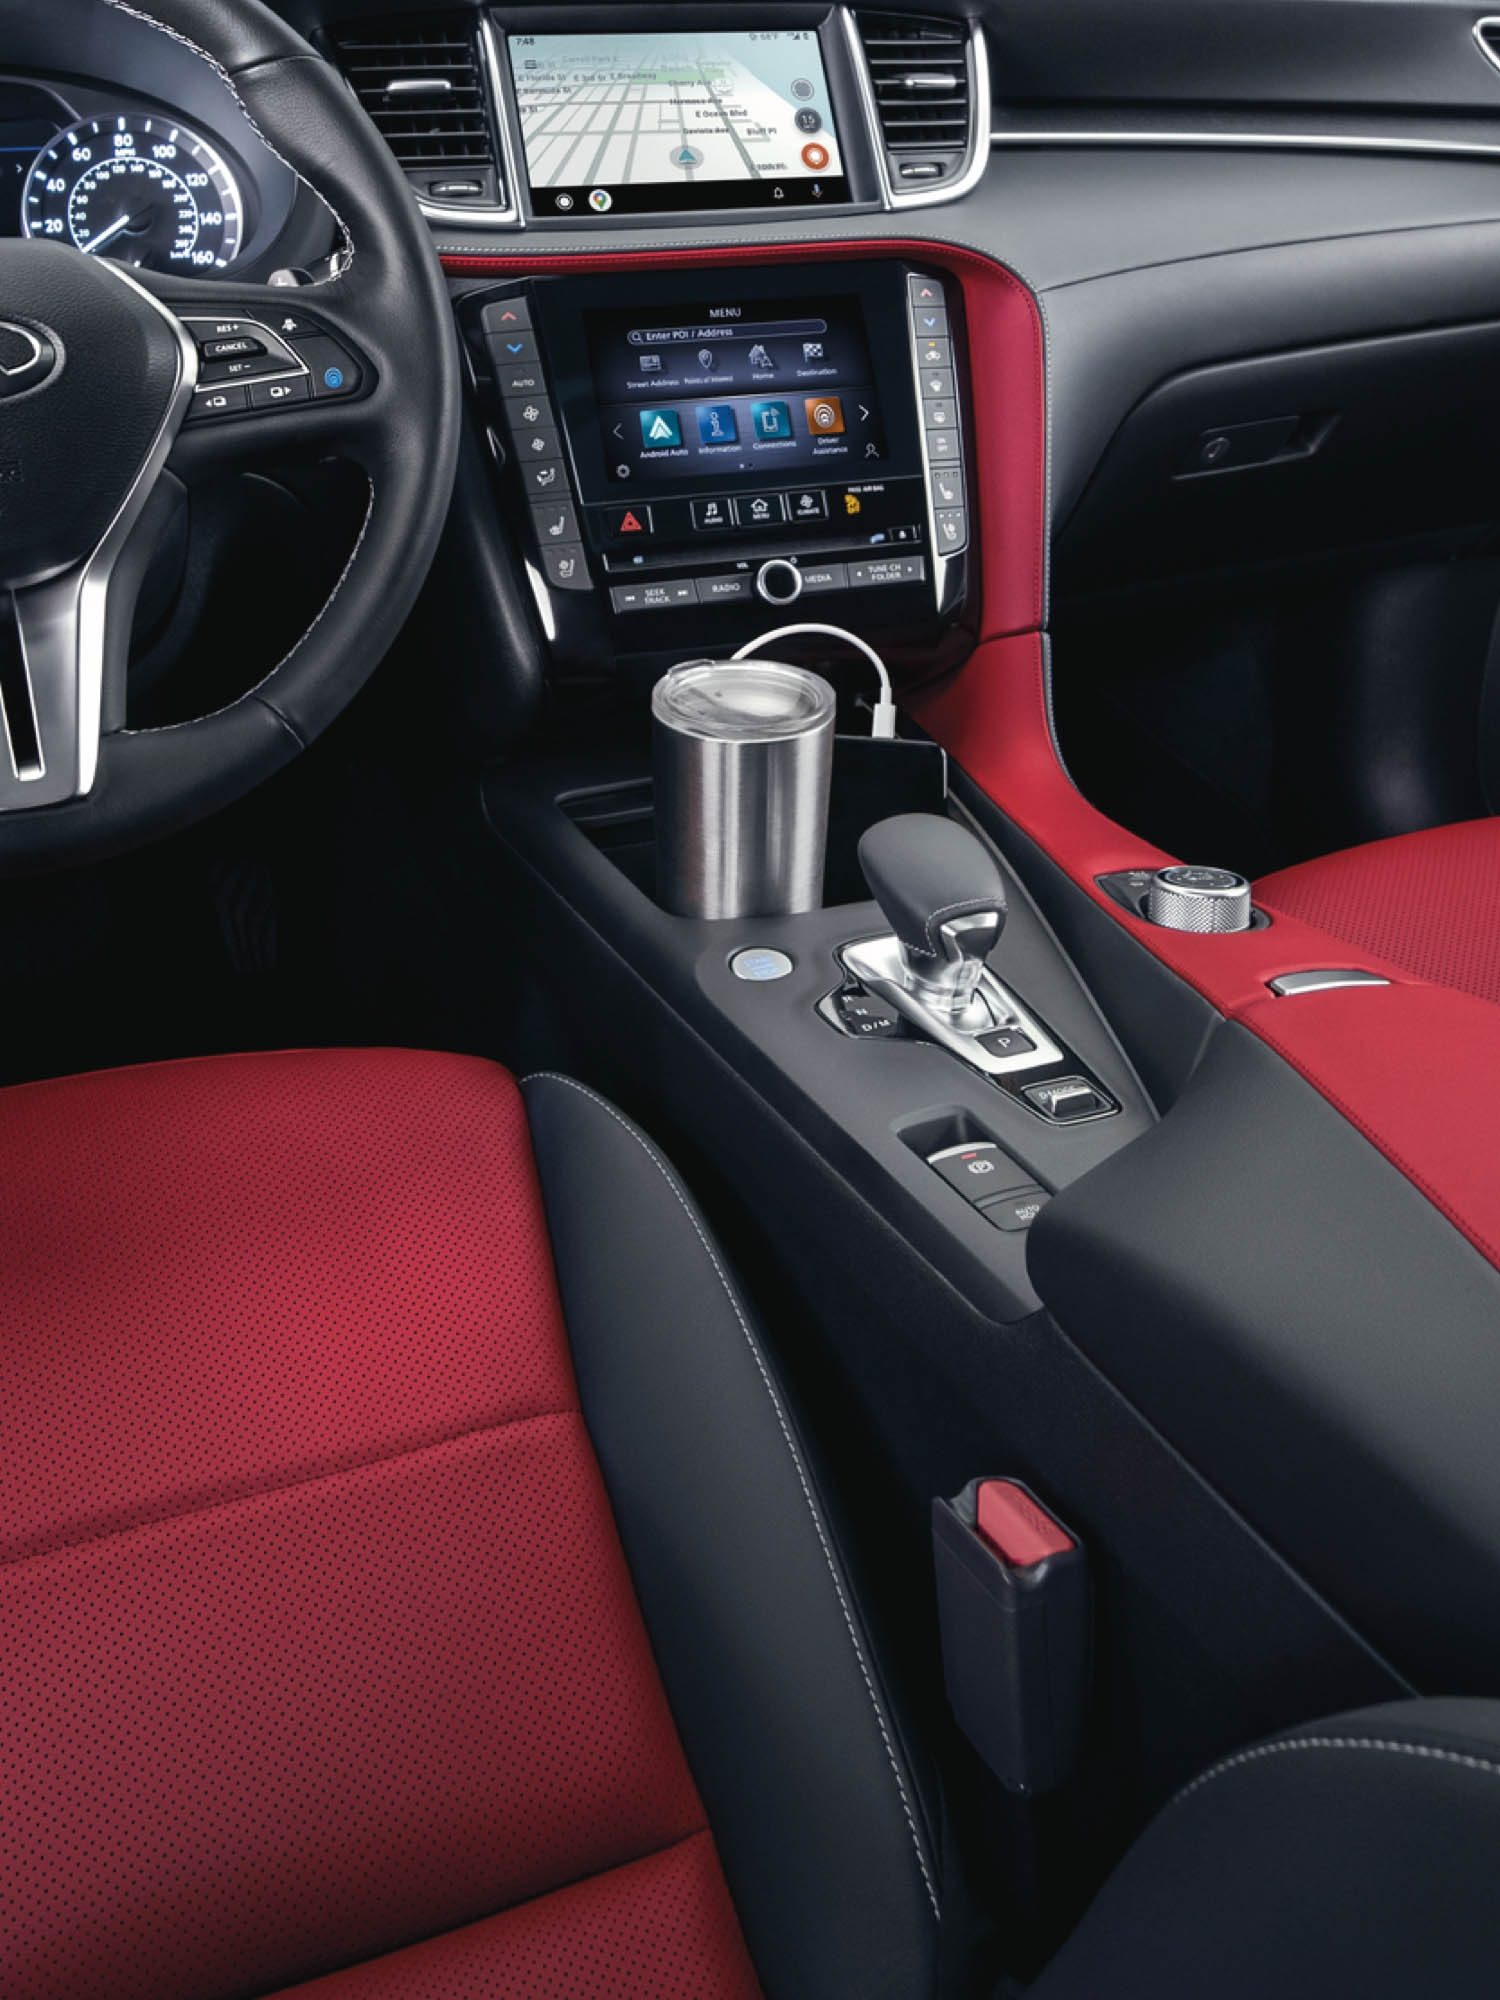 Luxurious black and red interior in the 2022 INFINITI QX55 crossover